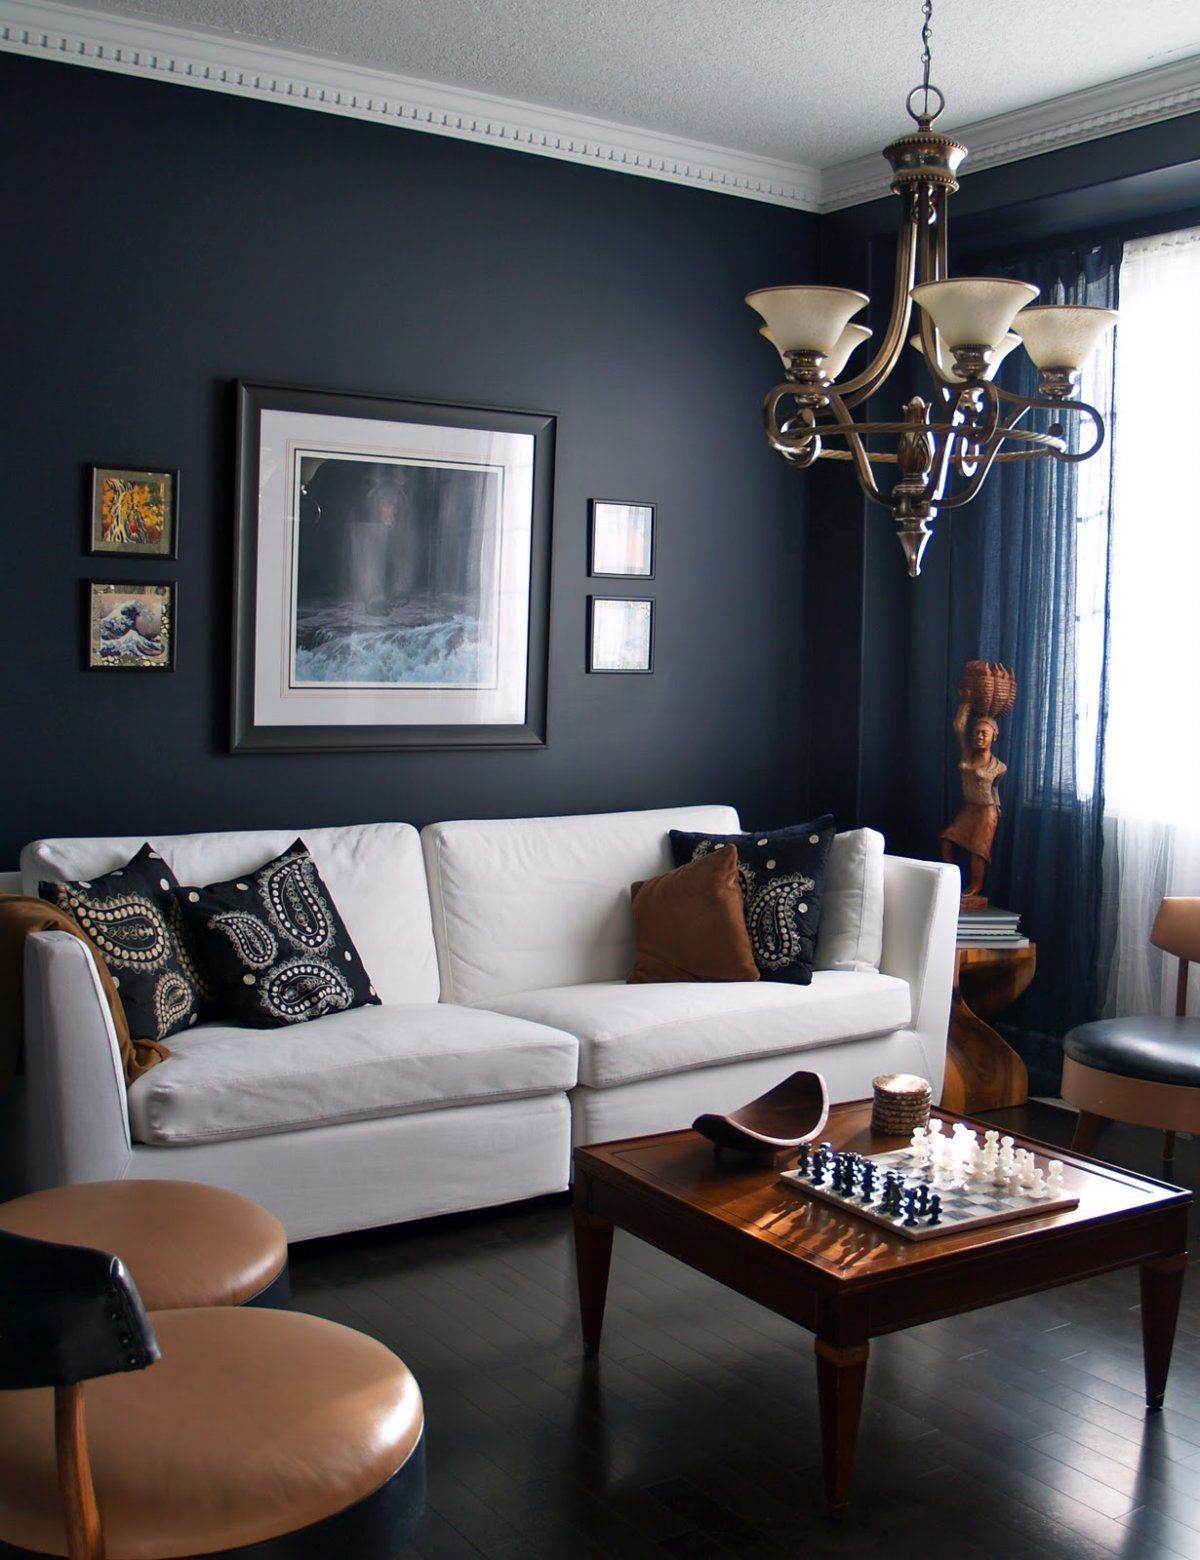 15 Beautiful Dark Blue Wall Design Ideas Navy blue walls White